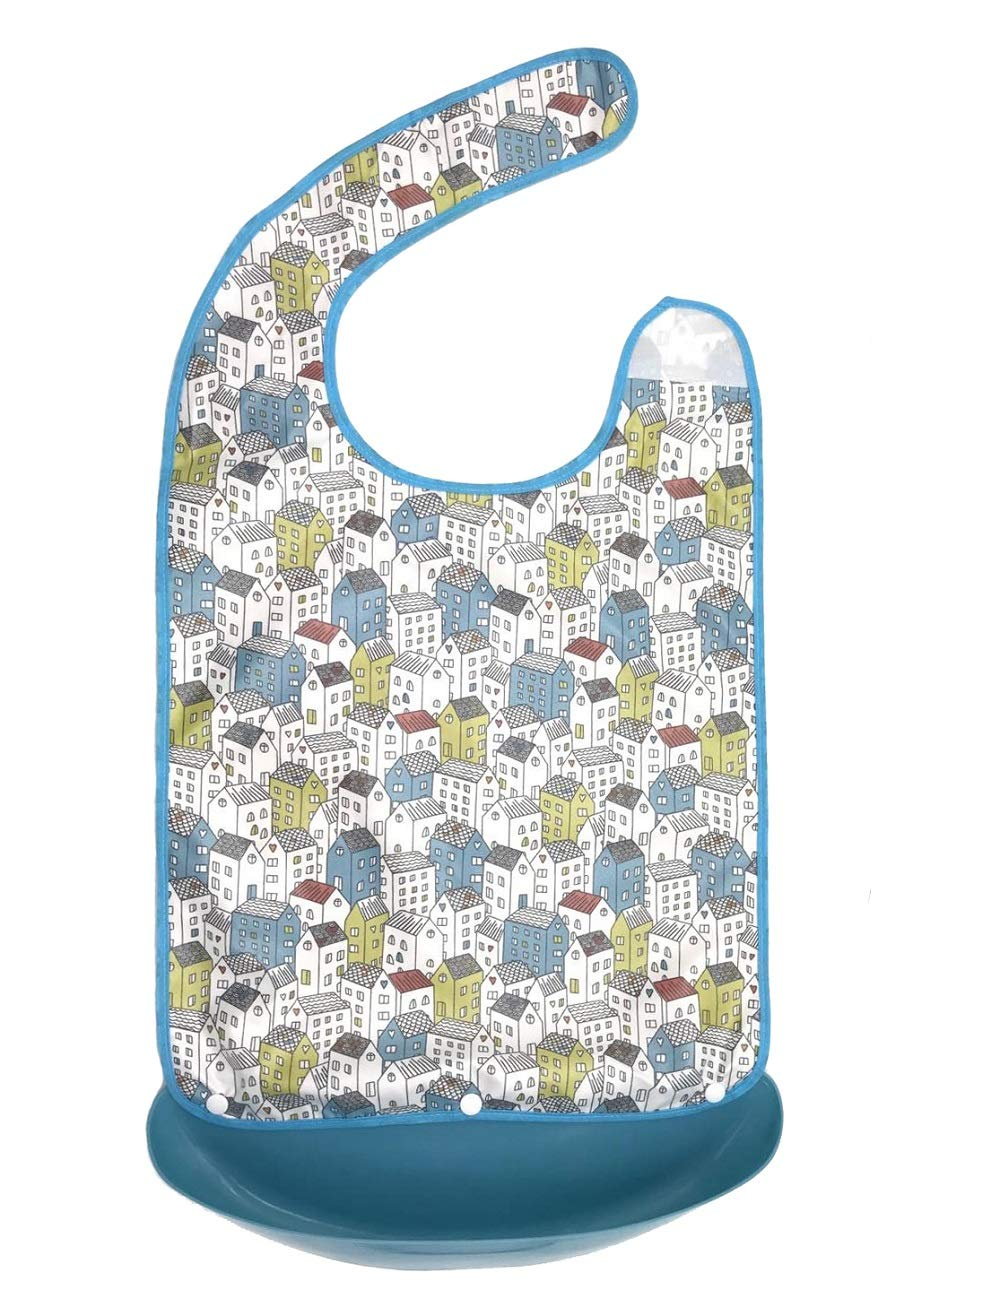 SWC Store Adult Bib with Crumb Catcher - Large Size Adult Feeding Aid Easy to Clean for Patient Old People